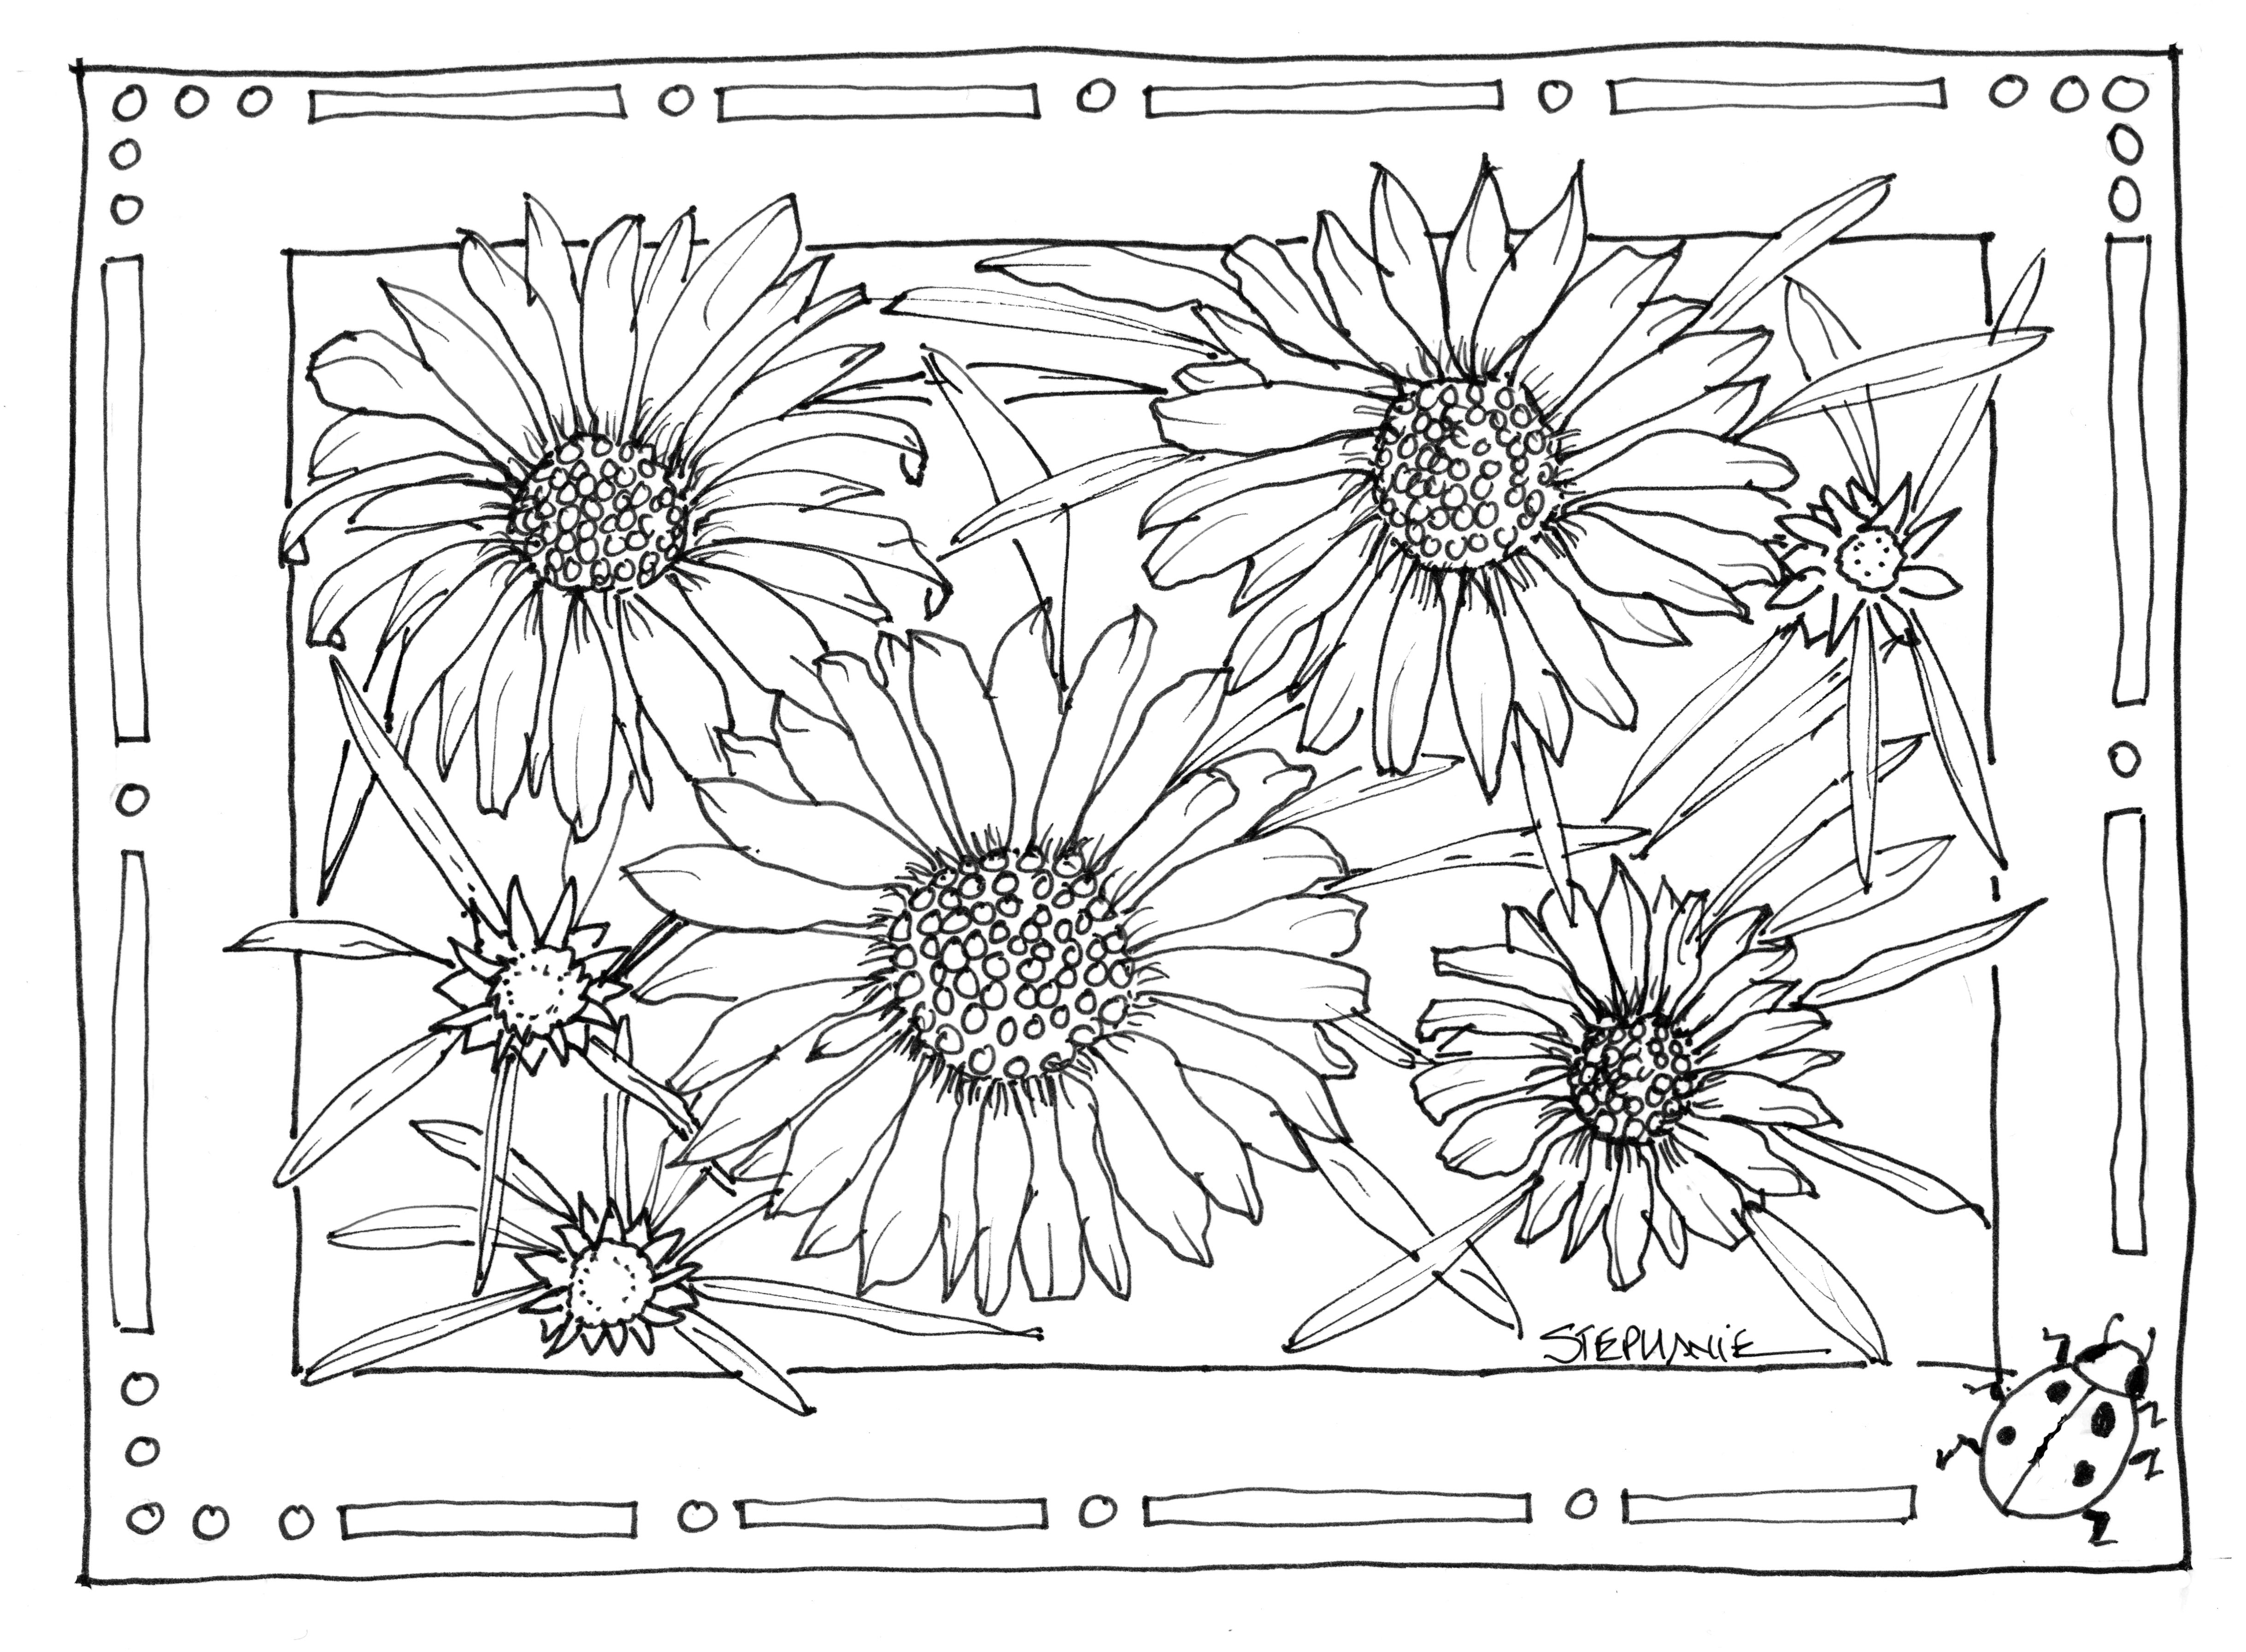 coloring nature images printable nature coloring pages for kids images coloring nature